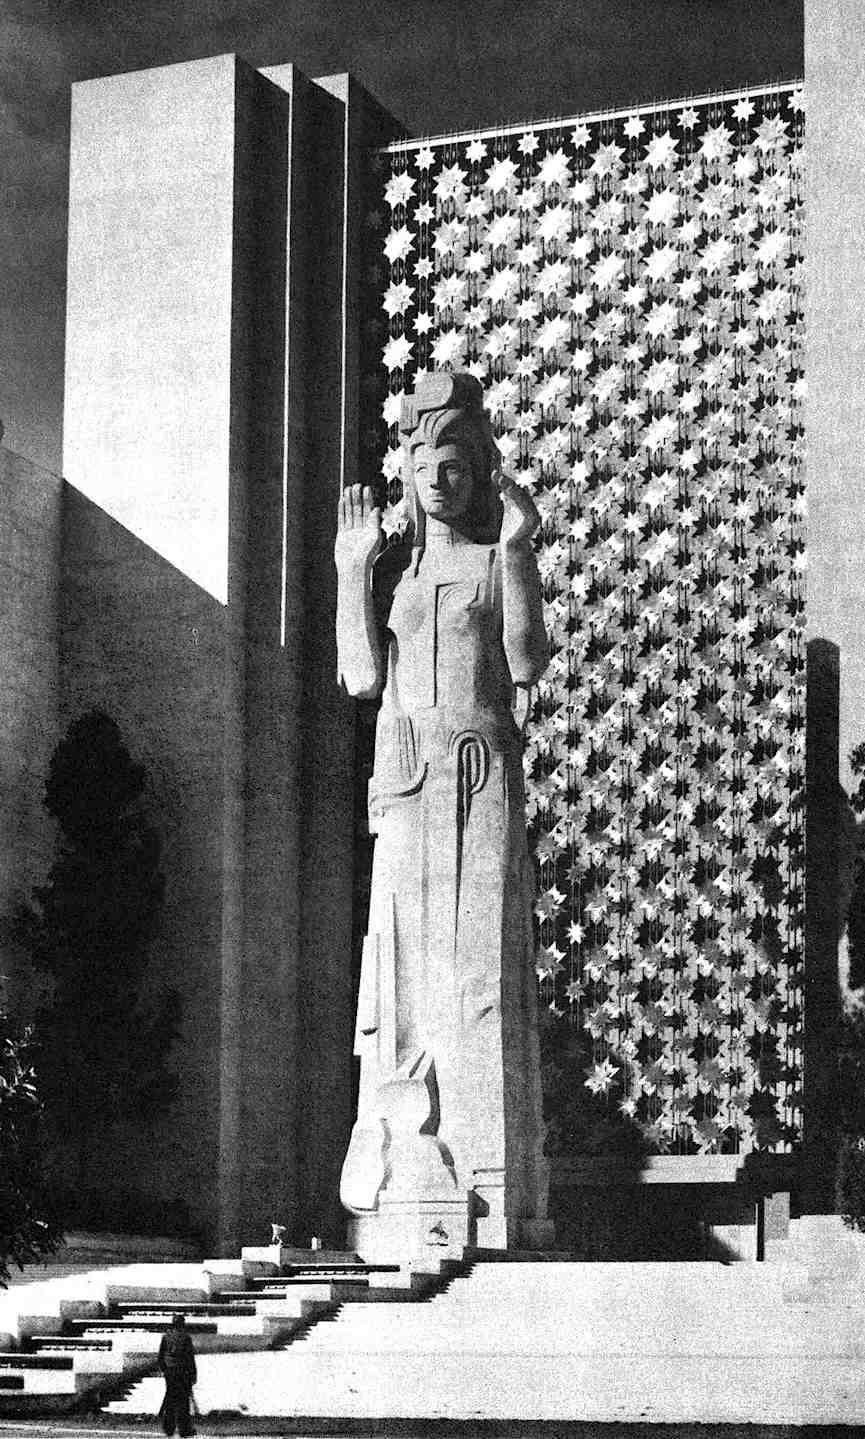 a photograph of a giant statue with a starburst screen at the 1939 Worlds Fair in San Fancisco